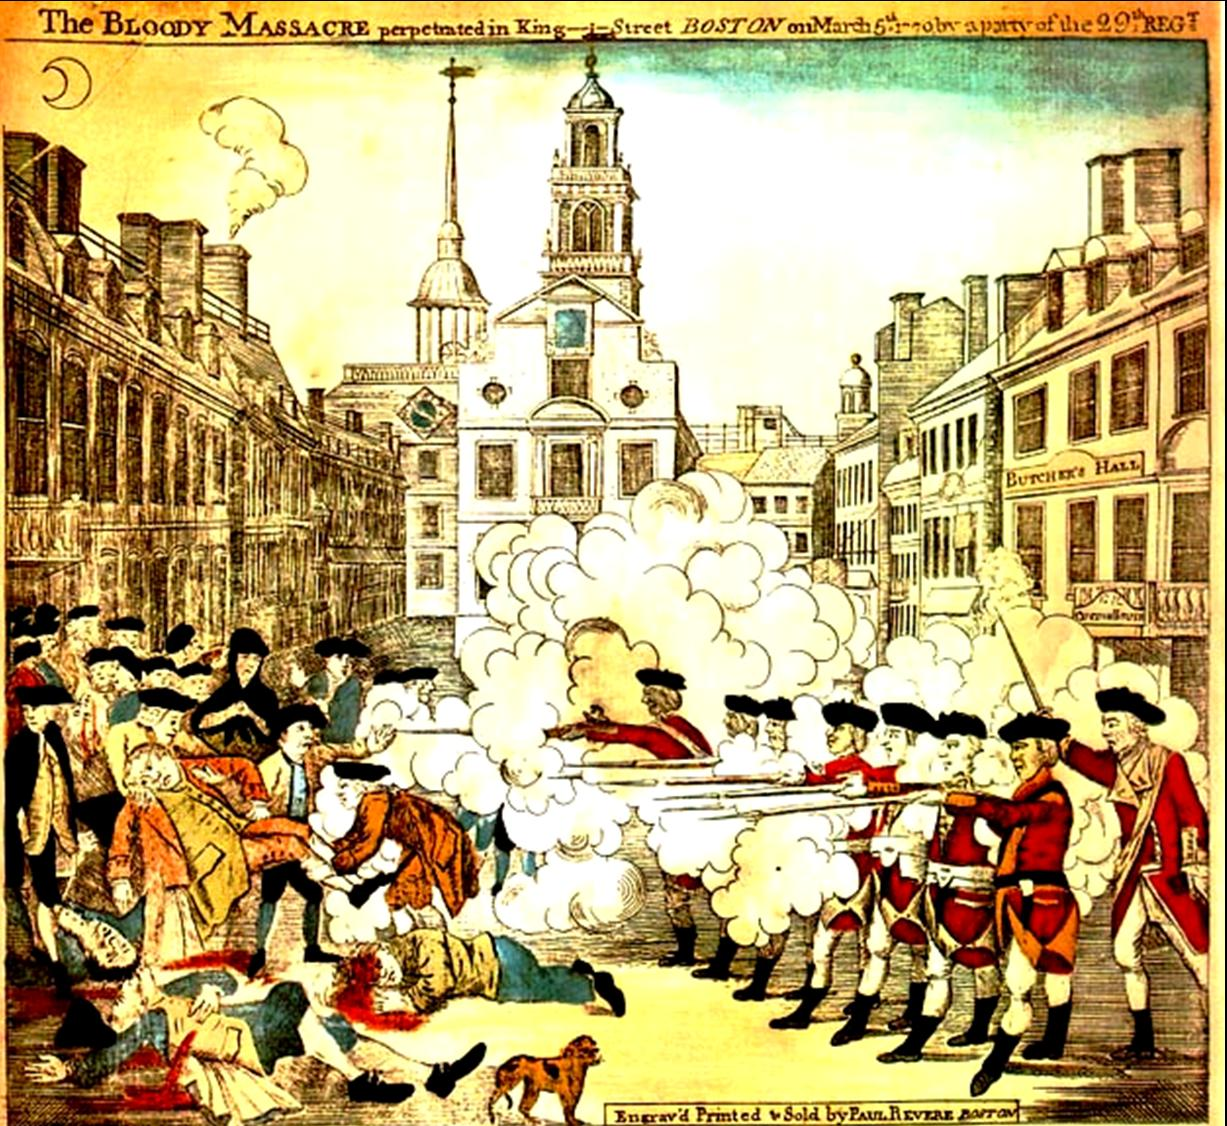 The Boston Massacre, known as the Incident on King Street by the British, was an incident on March 5, 1770, in which British Army soldiers shot and killed people while under attack by a mob.